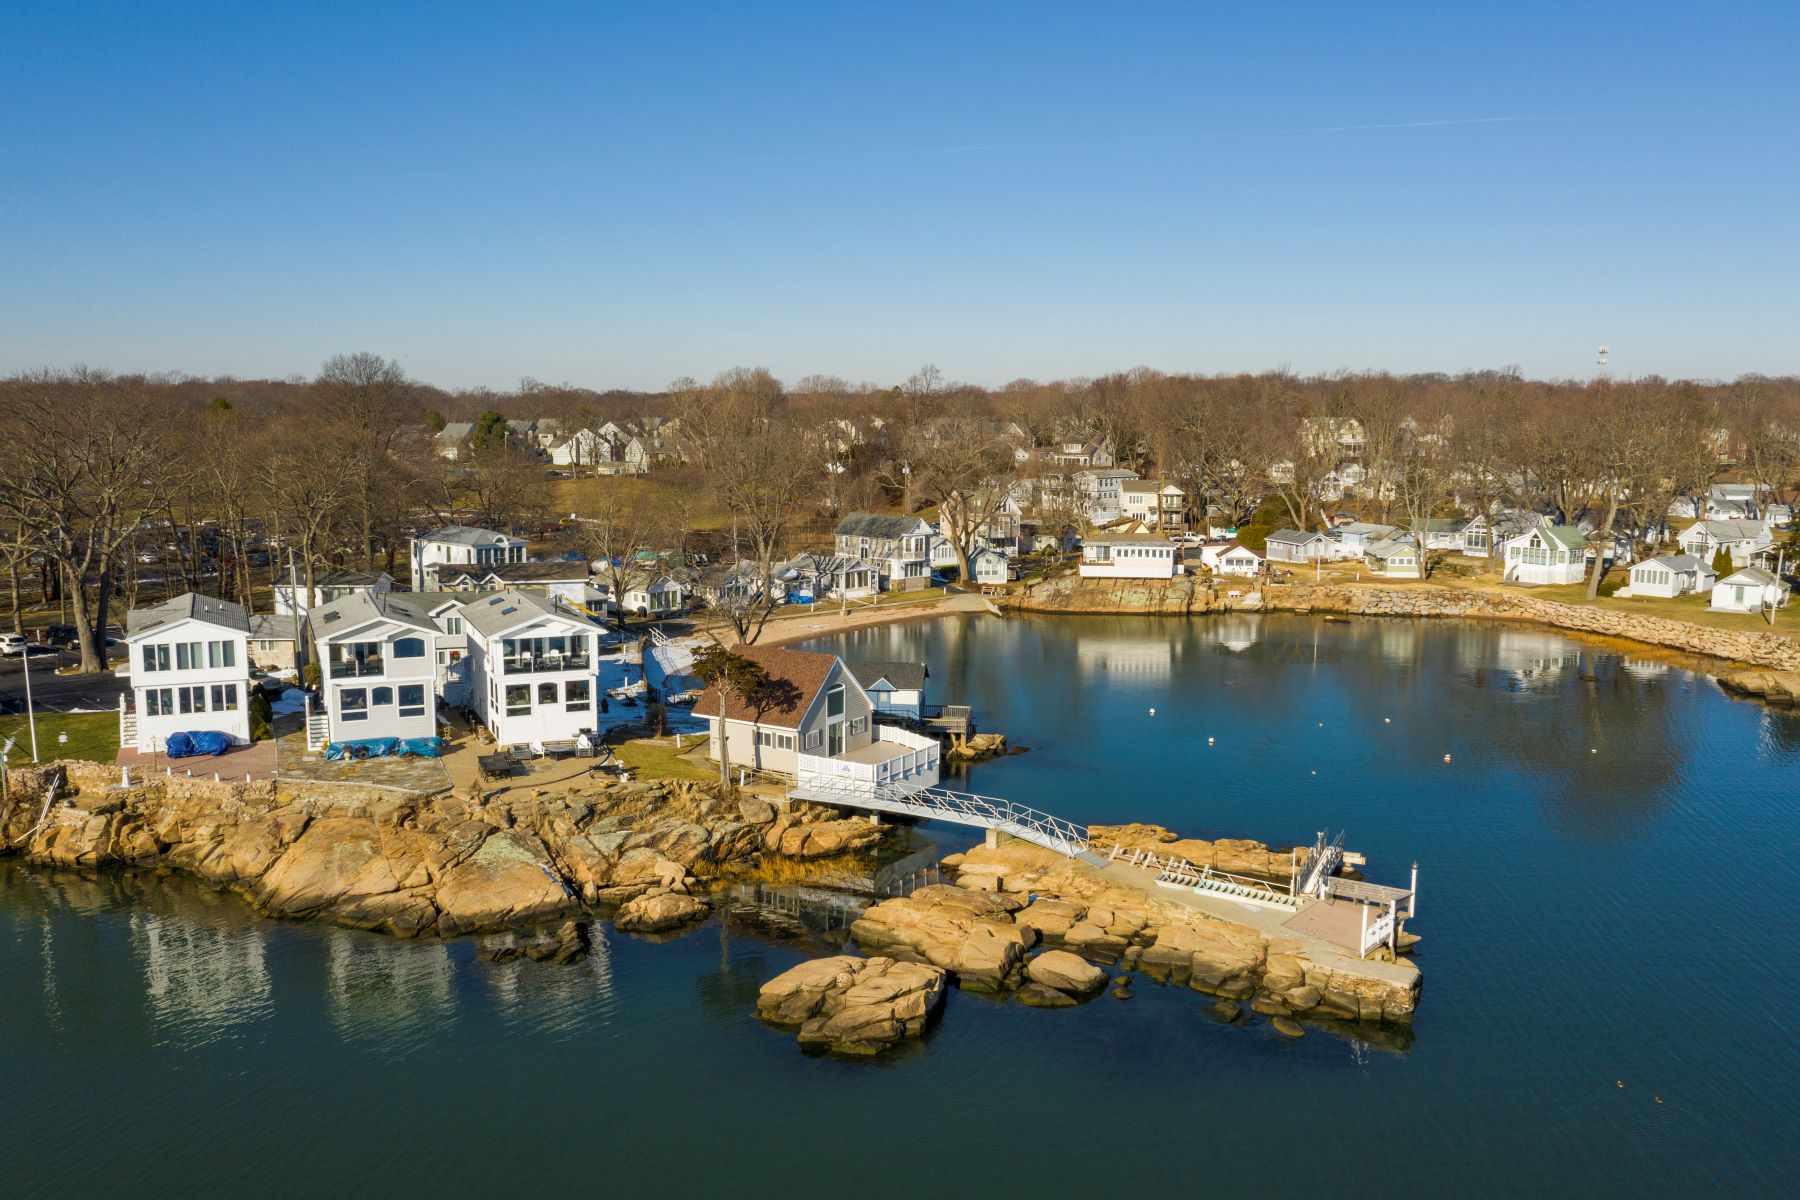 Single Family Homes for Sale at 34 Sunrise Cove Road Branford, Connecticut 06405 United States